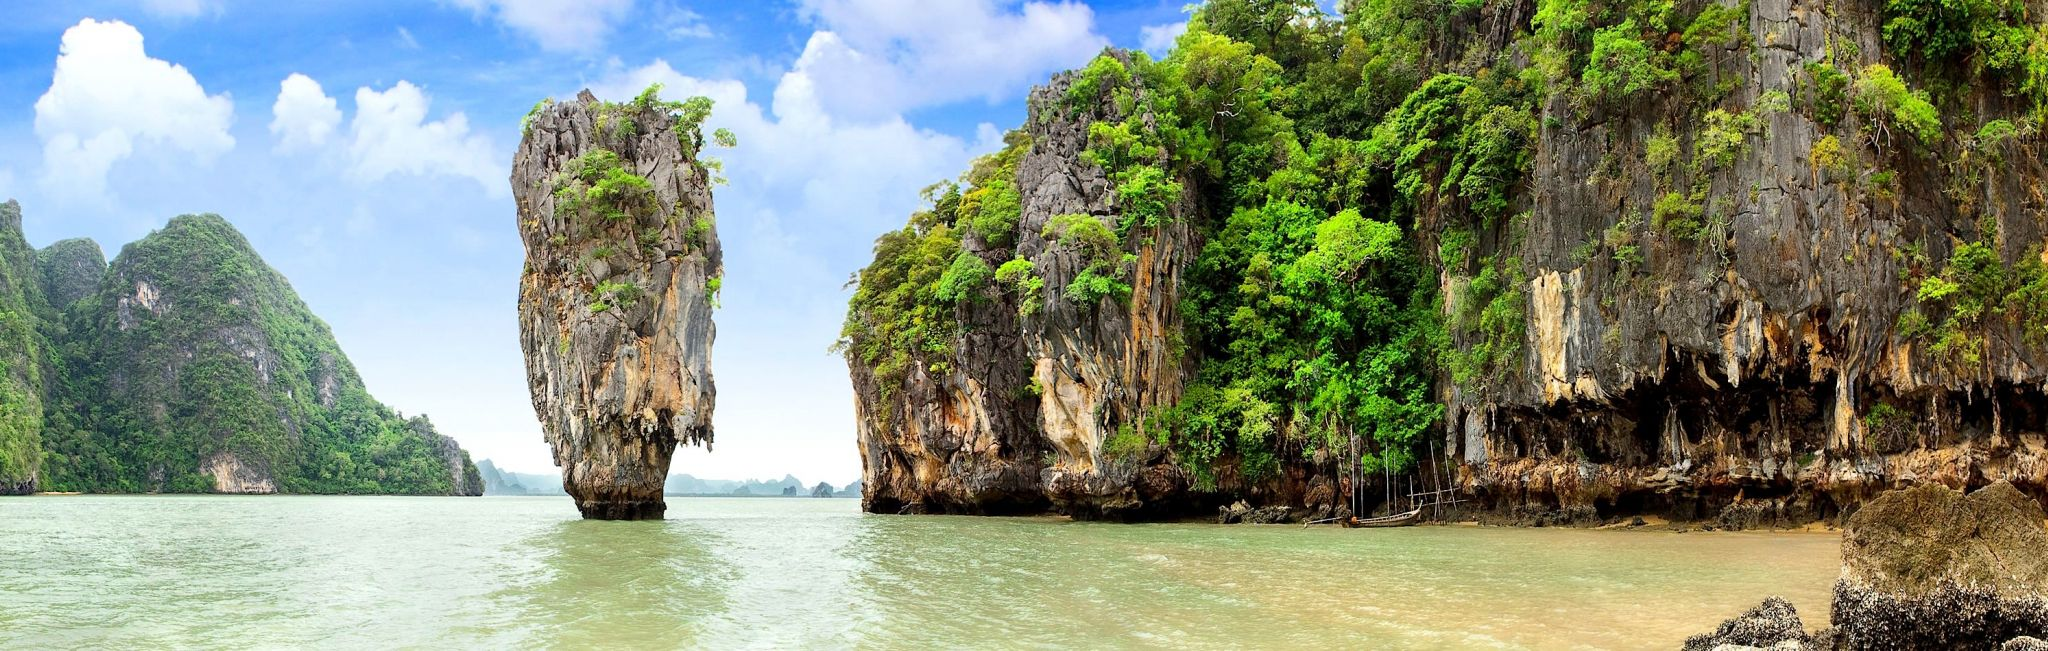 Best Thailand Tours Vacations Travel Packages 2018 2019